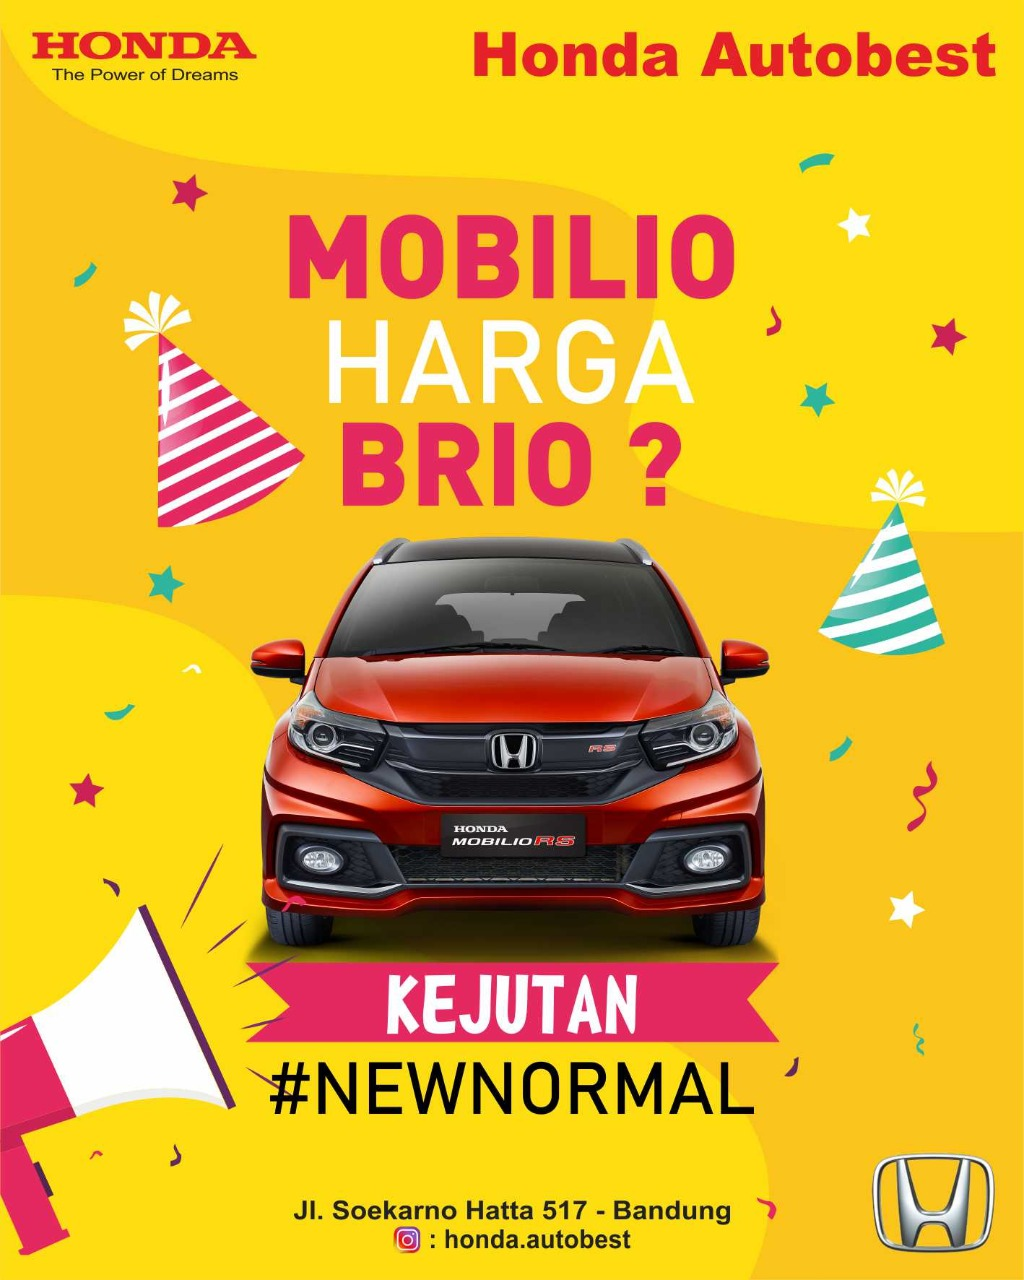 Mobilio Harga Brio, Kejutan New Normal